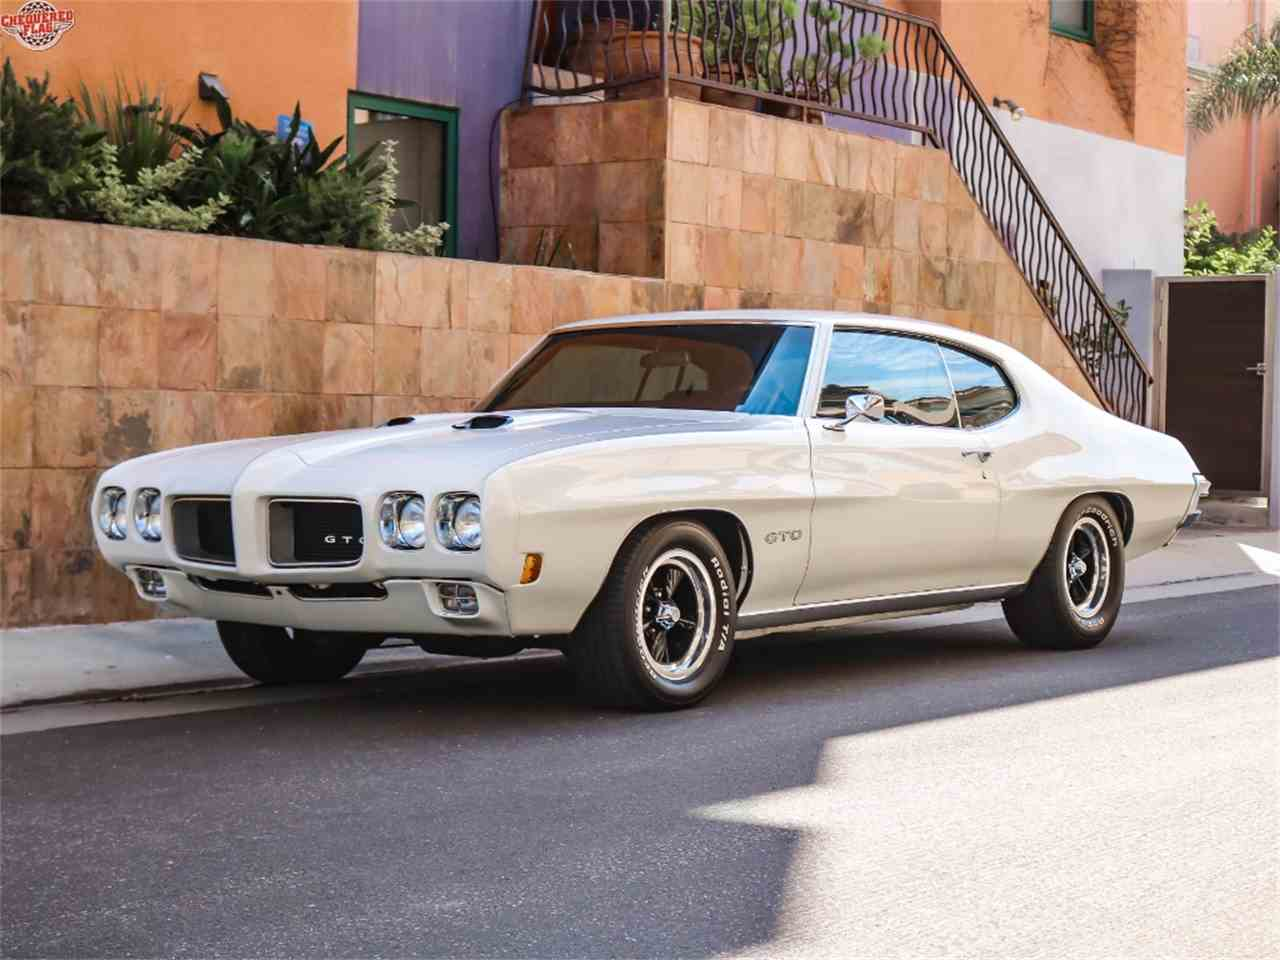 Large Picture of 1970 Pontiac GTO located in Marina Del Rey California Offered by Chequered Flag International - LTS2